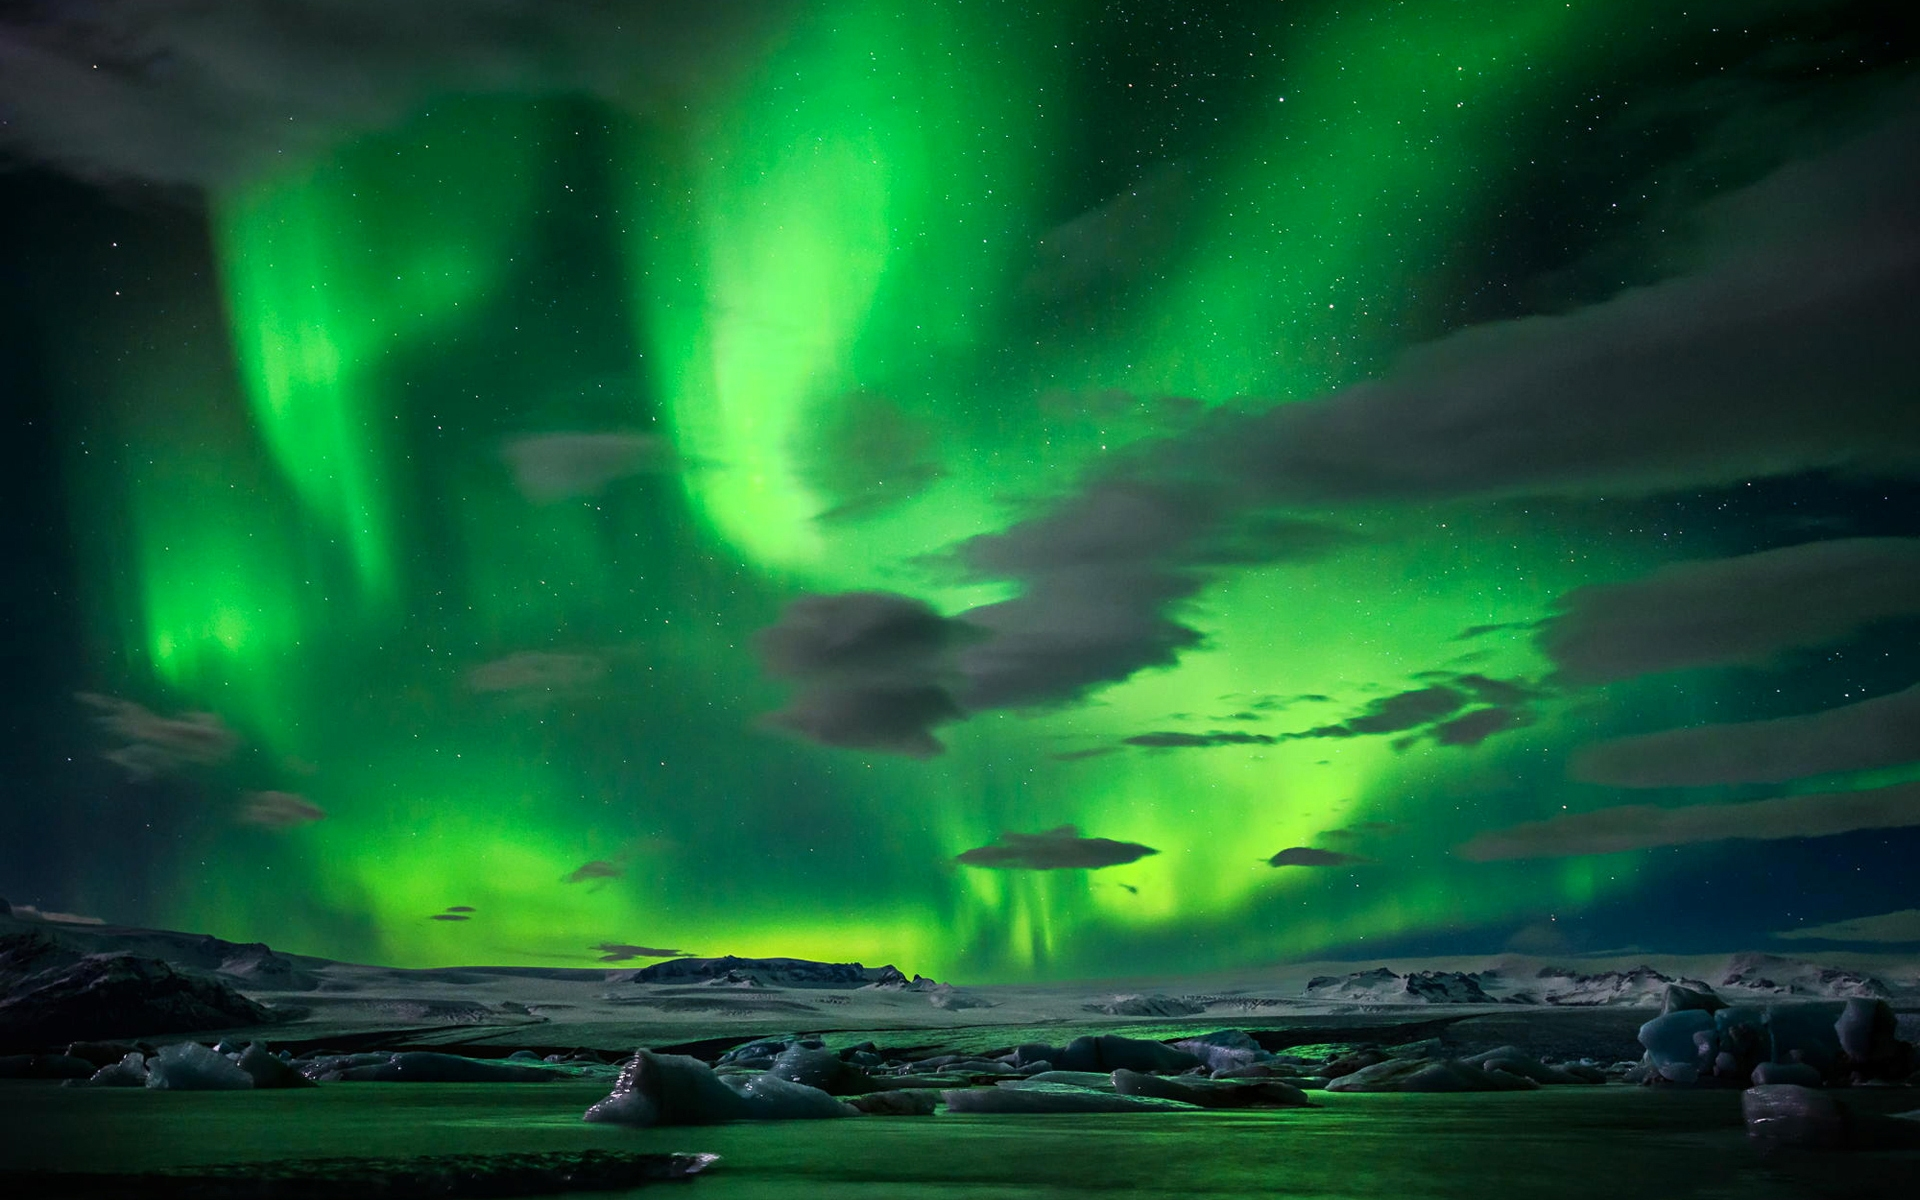 Northern Lights Wallpaper Hd: Beautiful Green NorthernLights Wallpapers